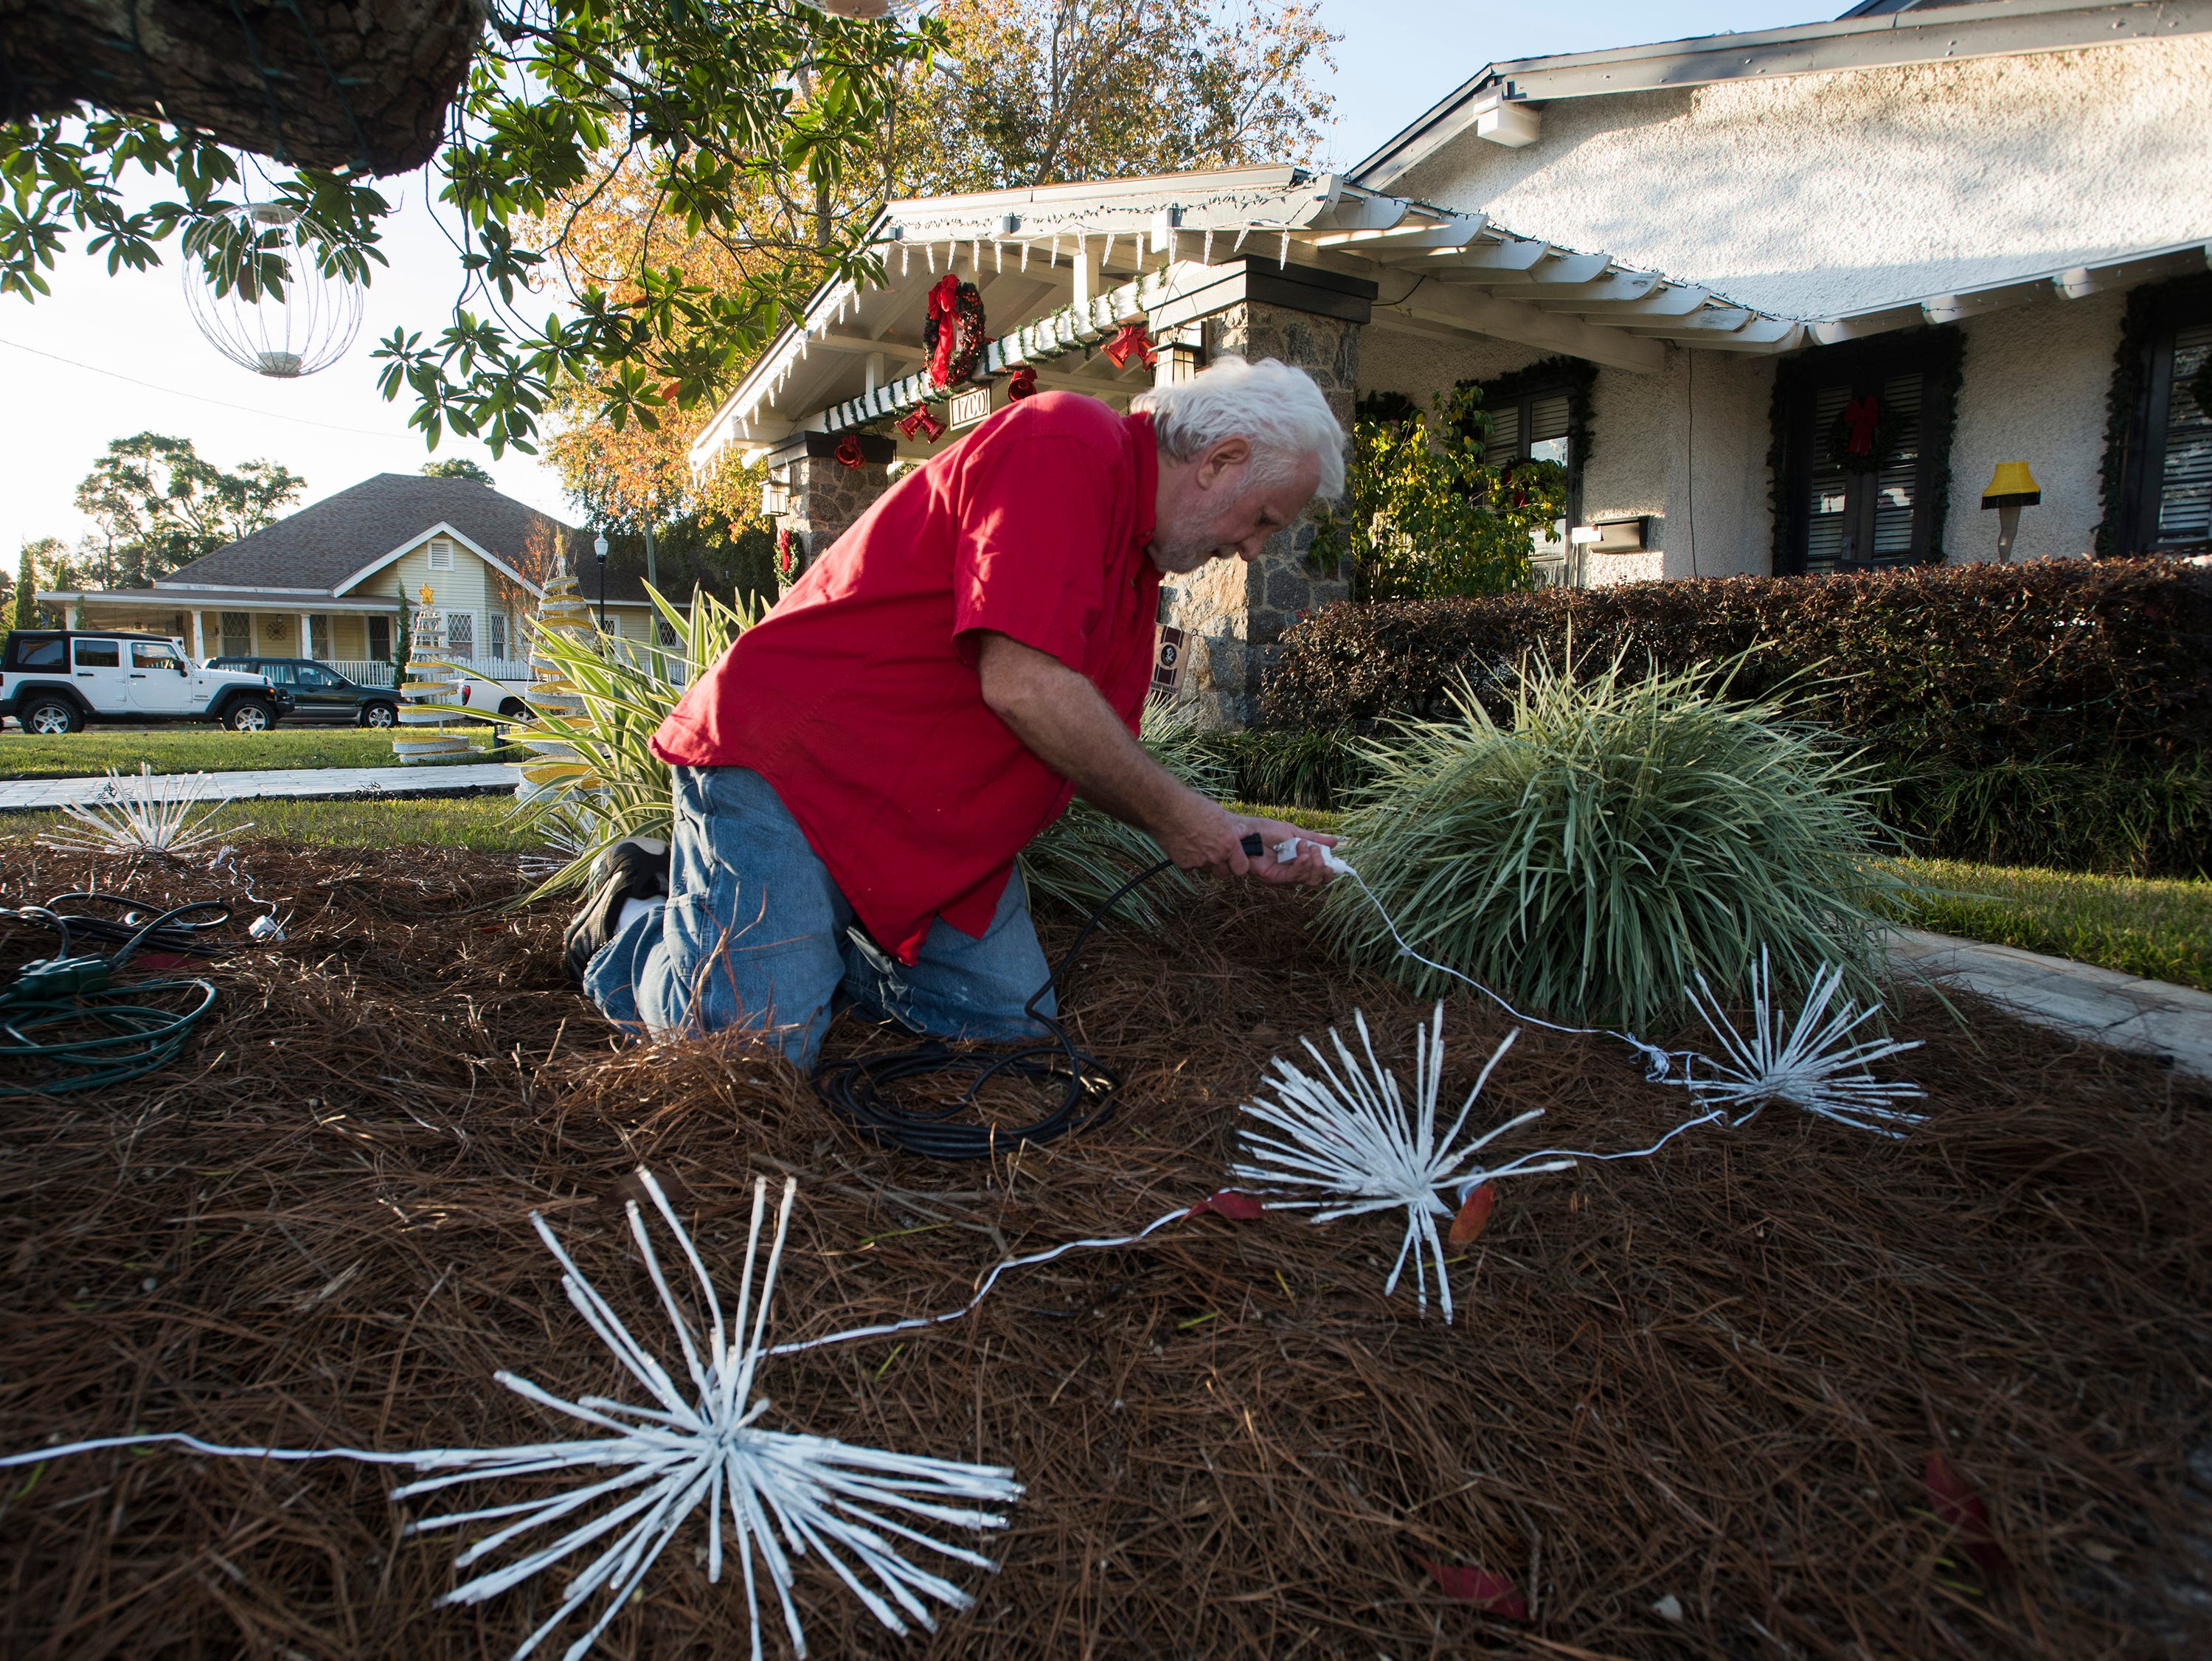 Pensacola resident, Mike Burleson, prepares for the Christmas season at his 17th Ave. home on Monday, Dec. 3, 2018. Burleson's house at the corner of 17th and Gadsden Street will feature a minimum of decorations this year after years of over-the-top seasonal decorations.